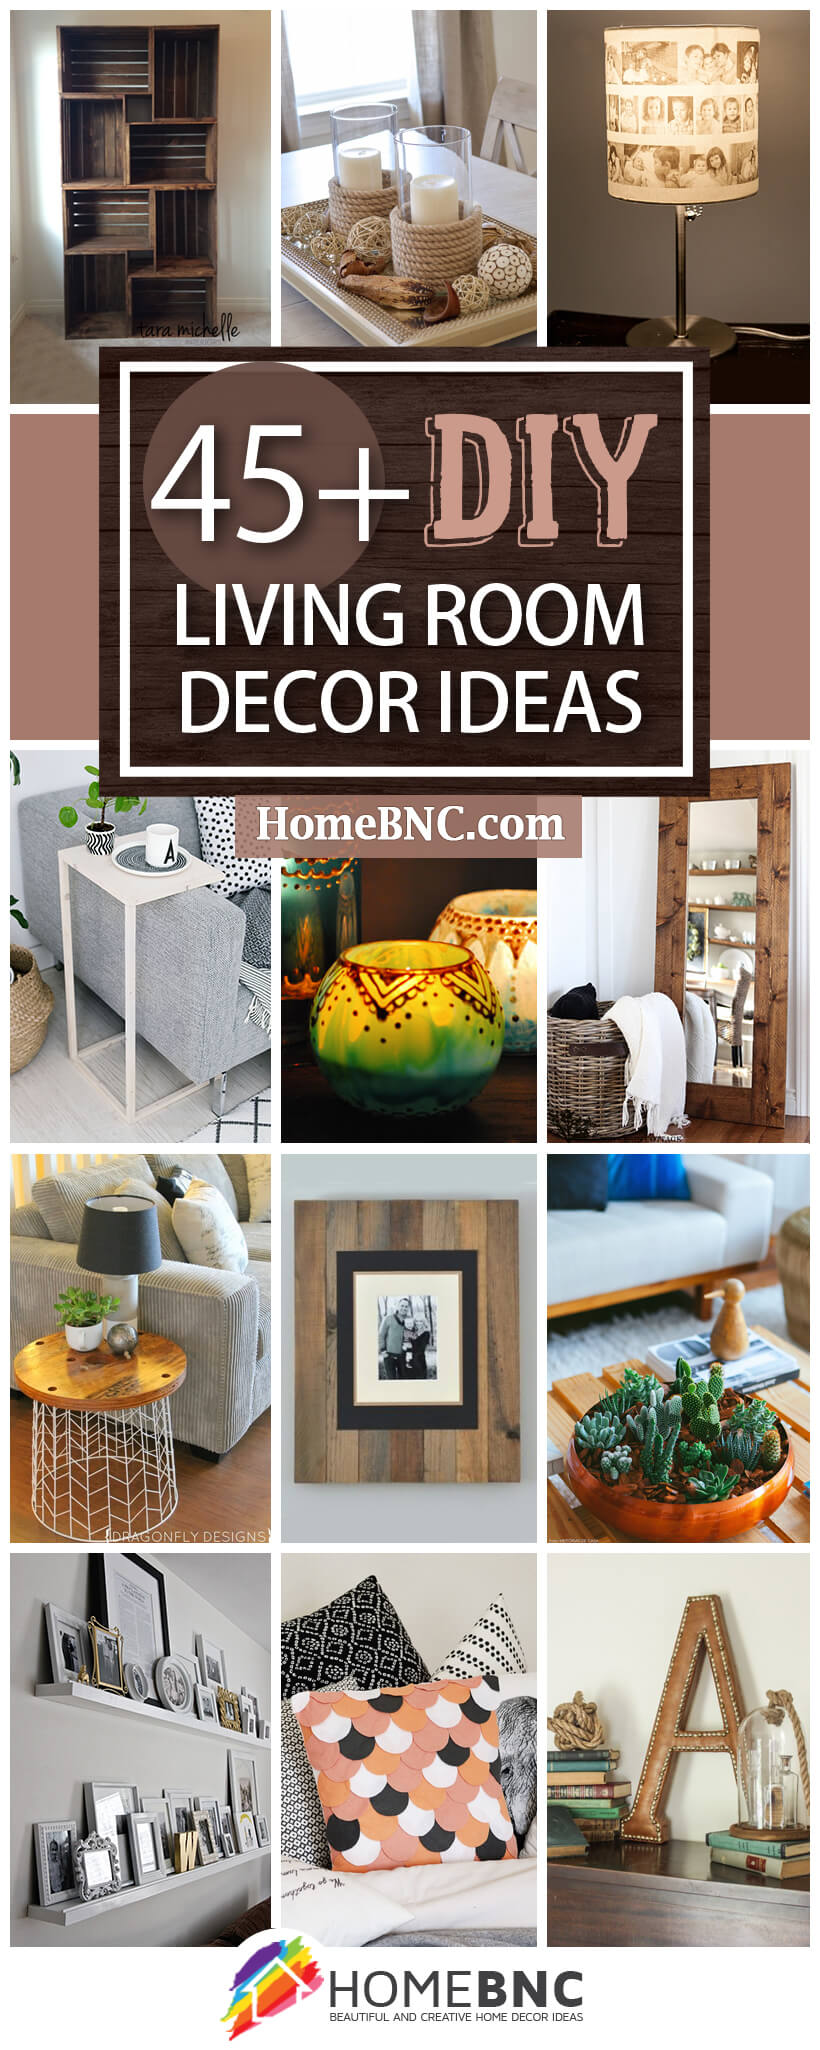 45+ Best DIY Living Room Decorating Ideas and Designs for 2021